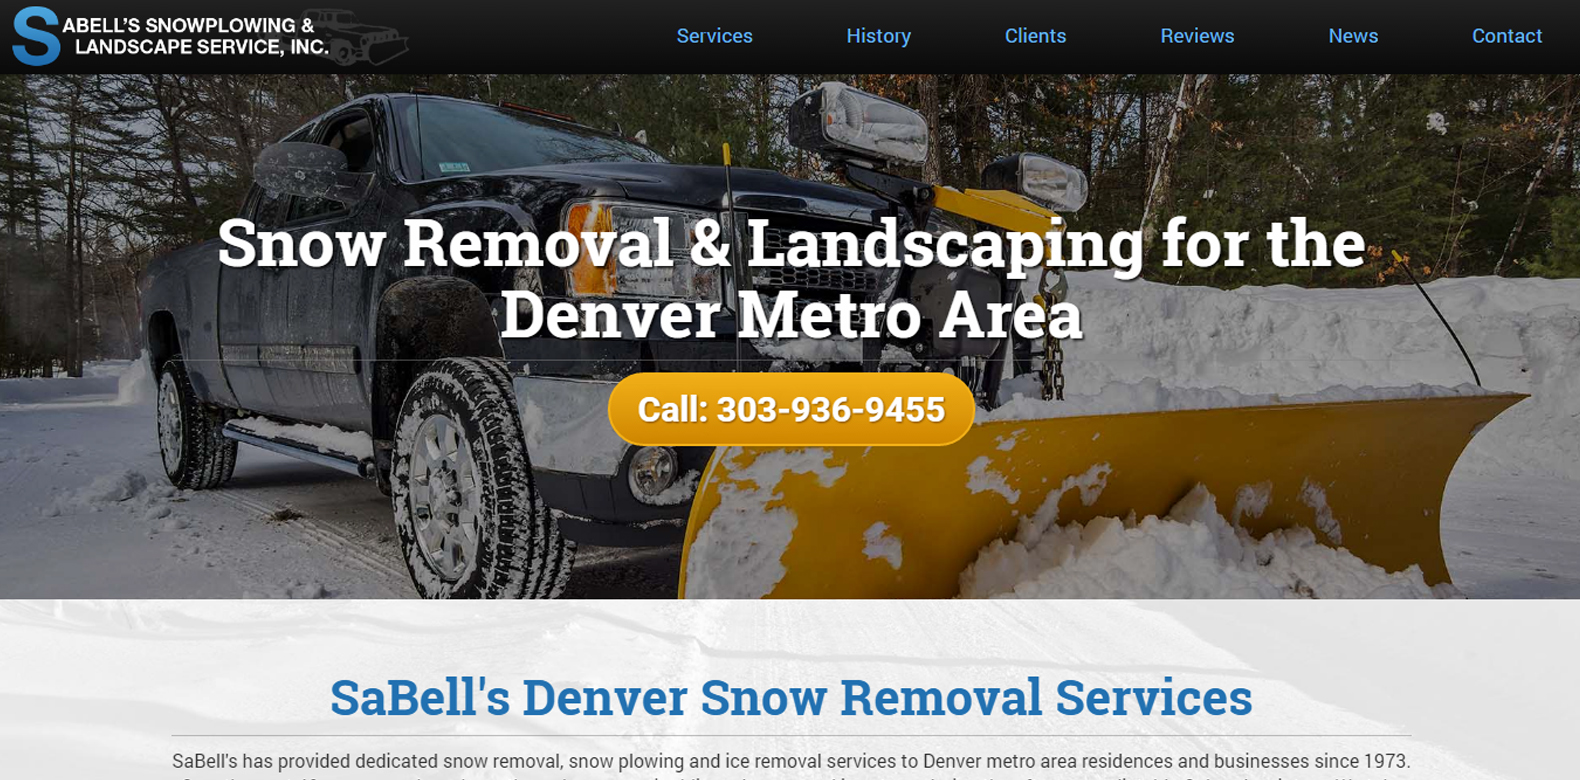 New Website Upgrade: Sabell's Snowplowing & Landscaping Service